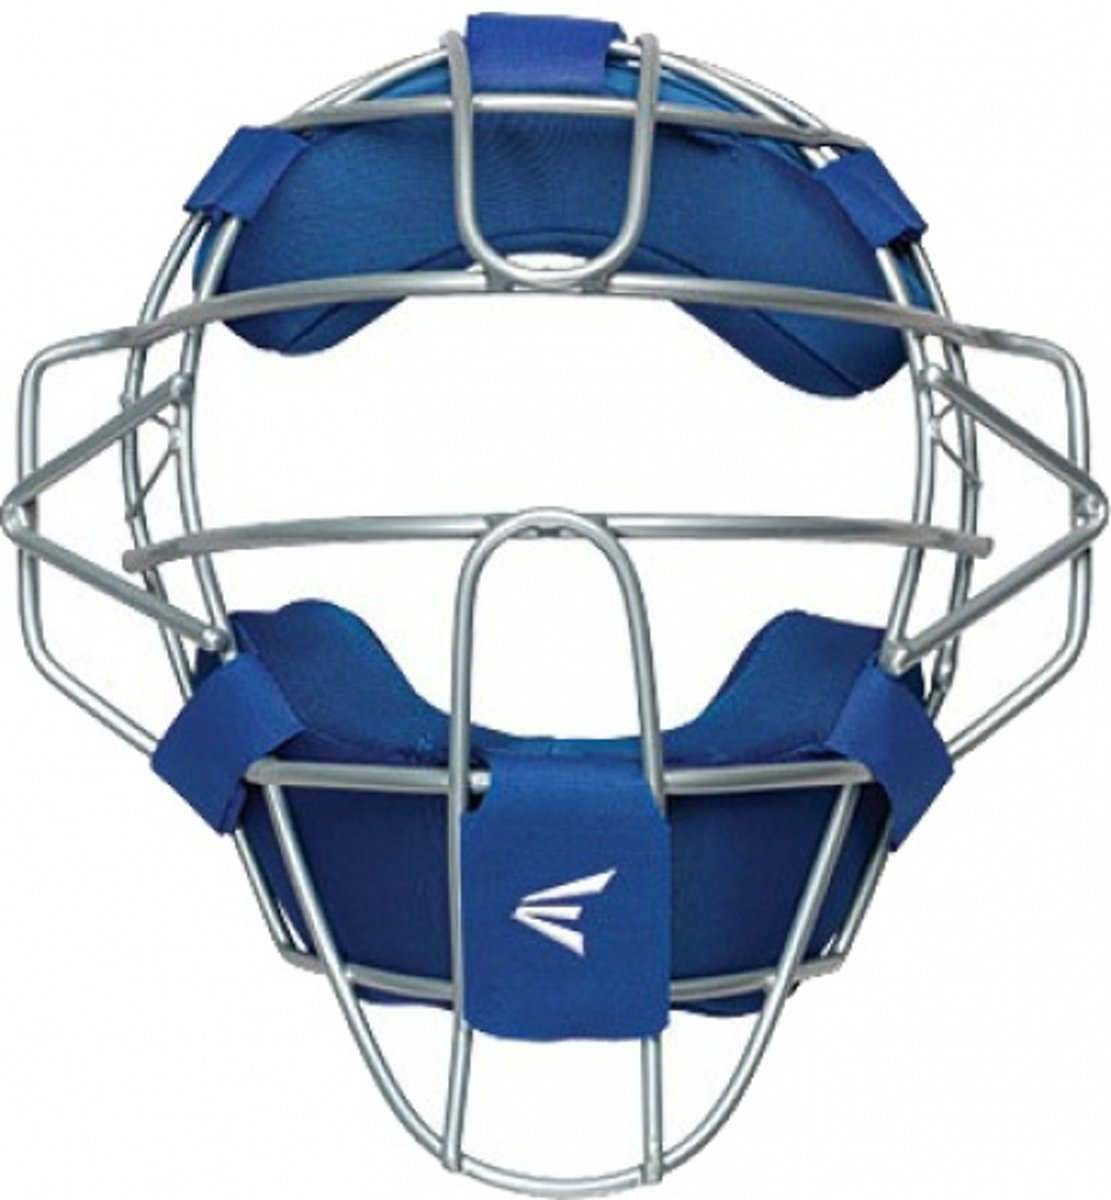 Easton Speed Elite Honkbal Catchermasker Royal kopen